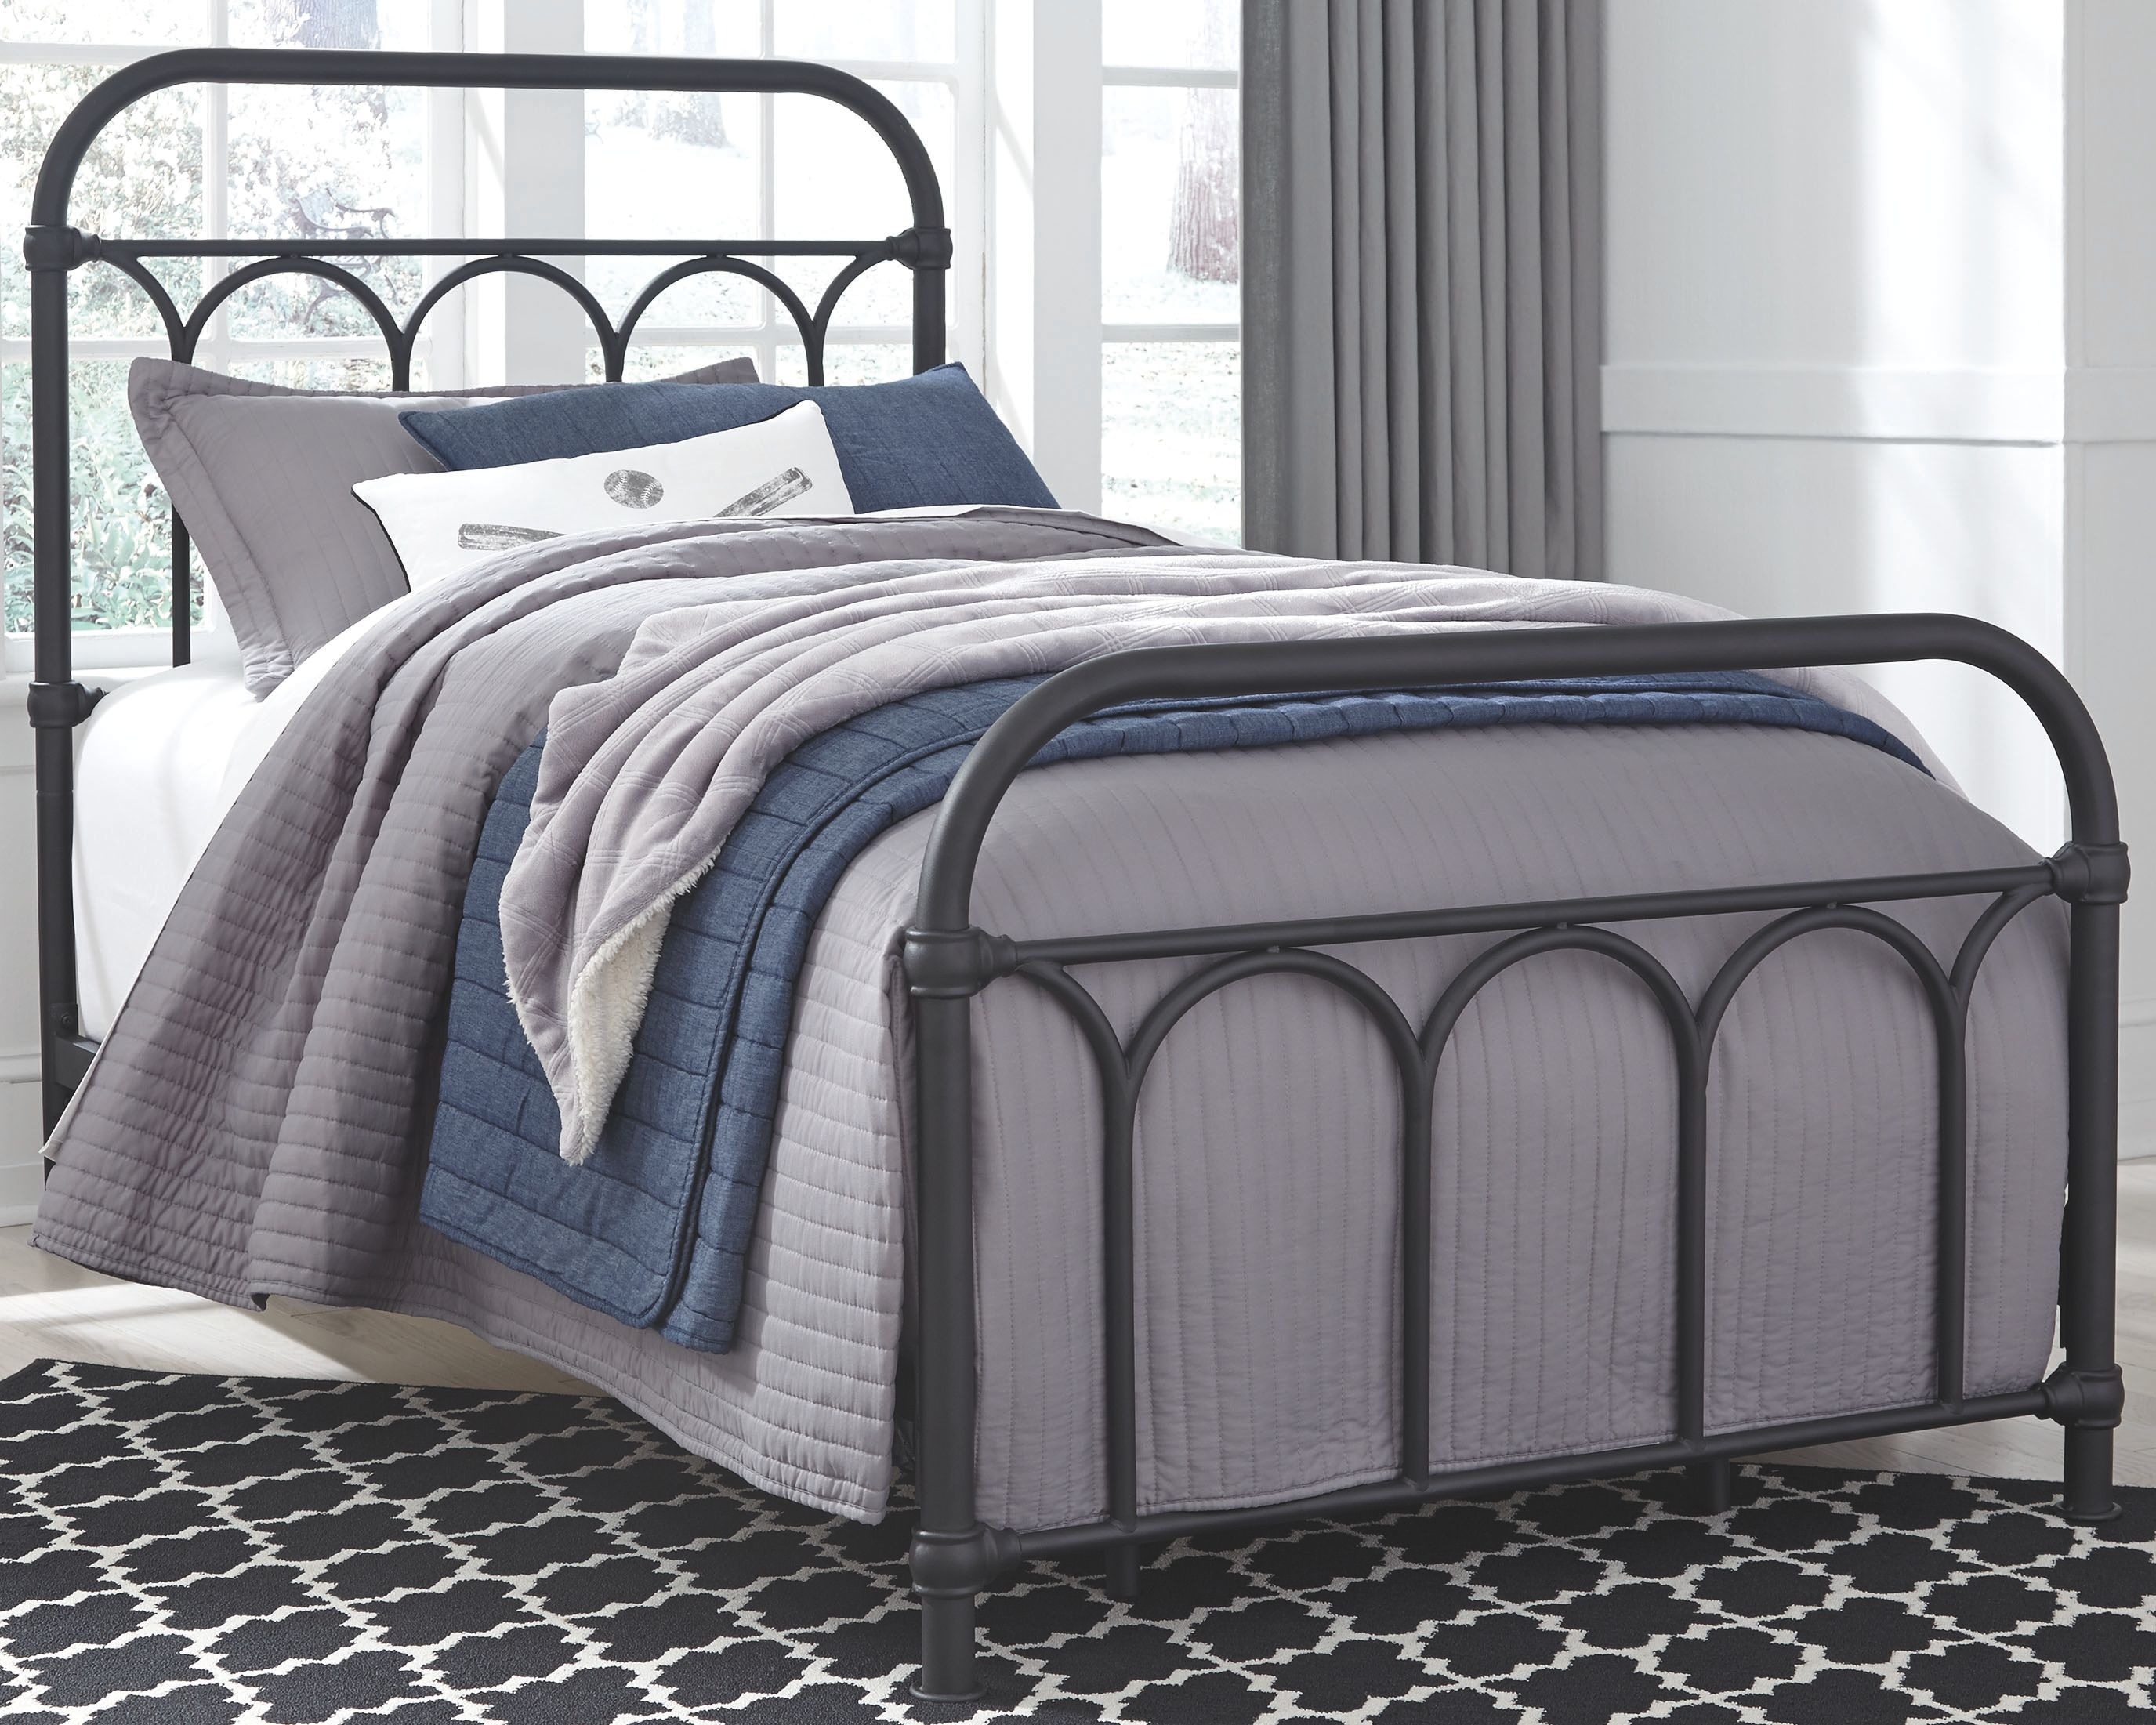 Nashburg Twin Metal Bed Black In 2020 Wrought Iron Beds Black